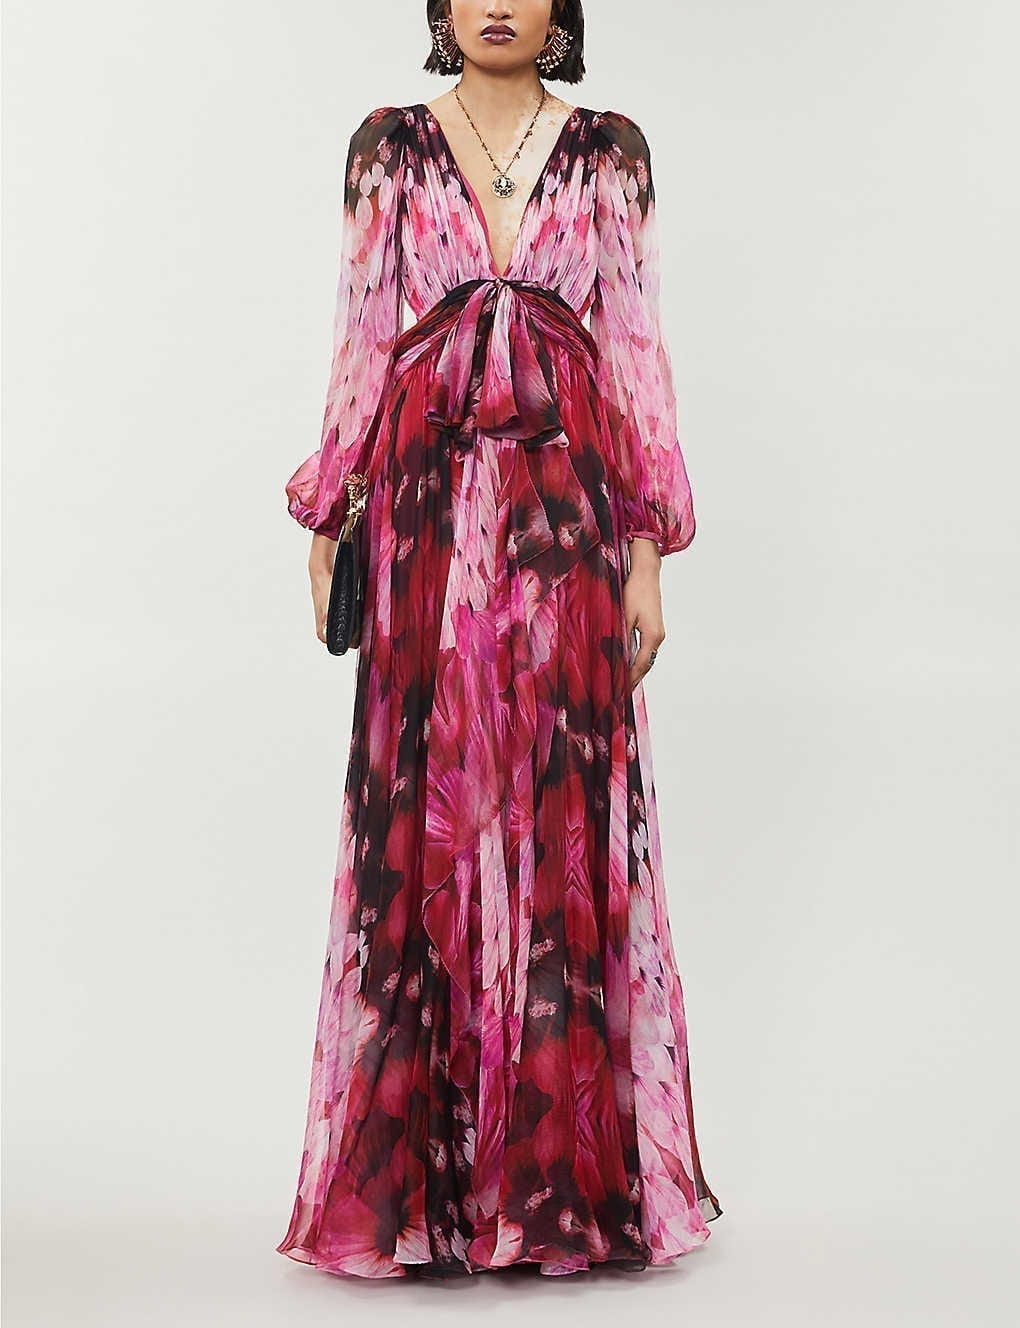 ALEXANDER MCQUEEN Floral-print Silk-crepe Gown